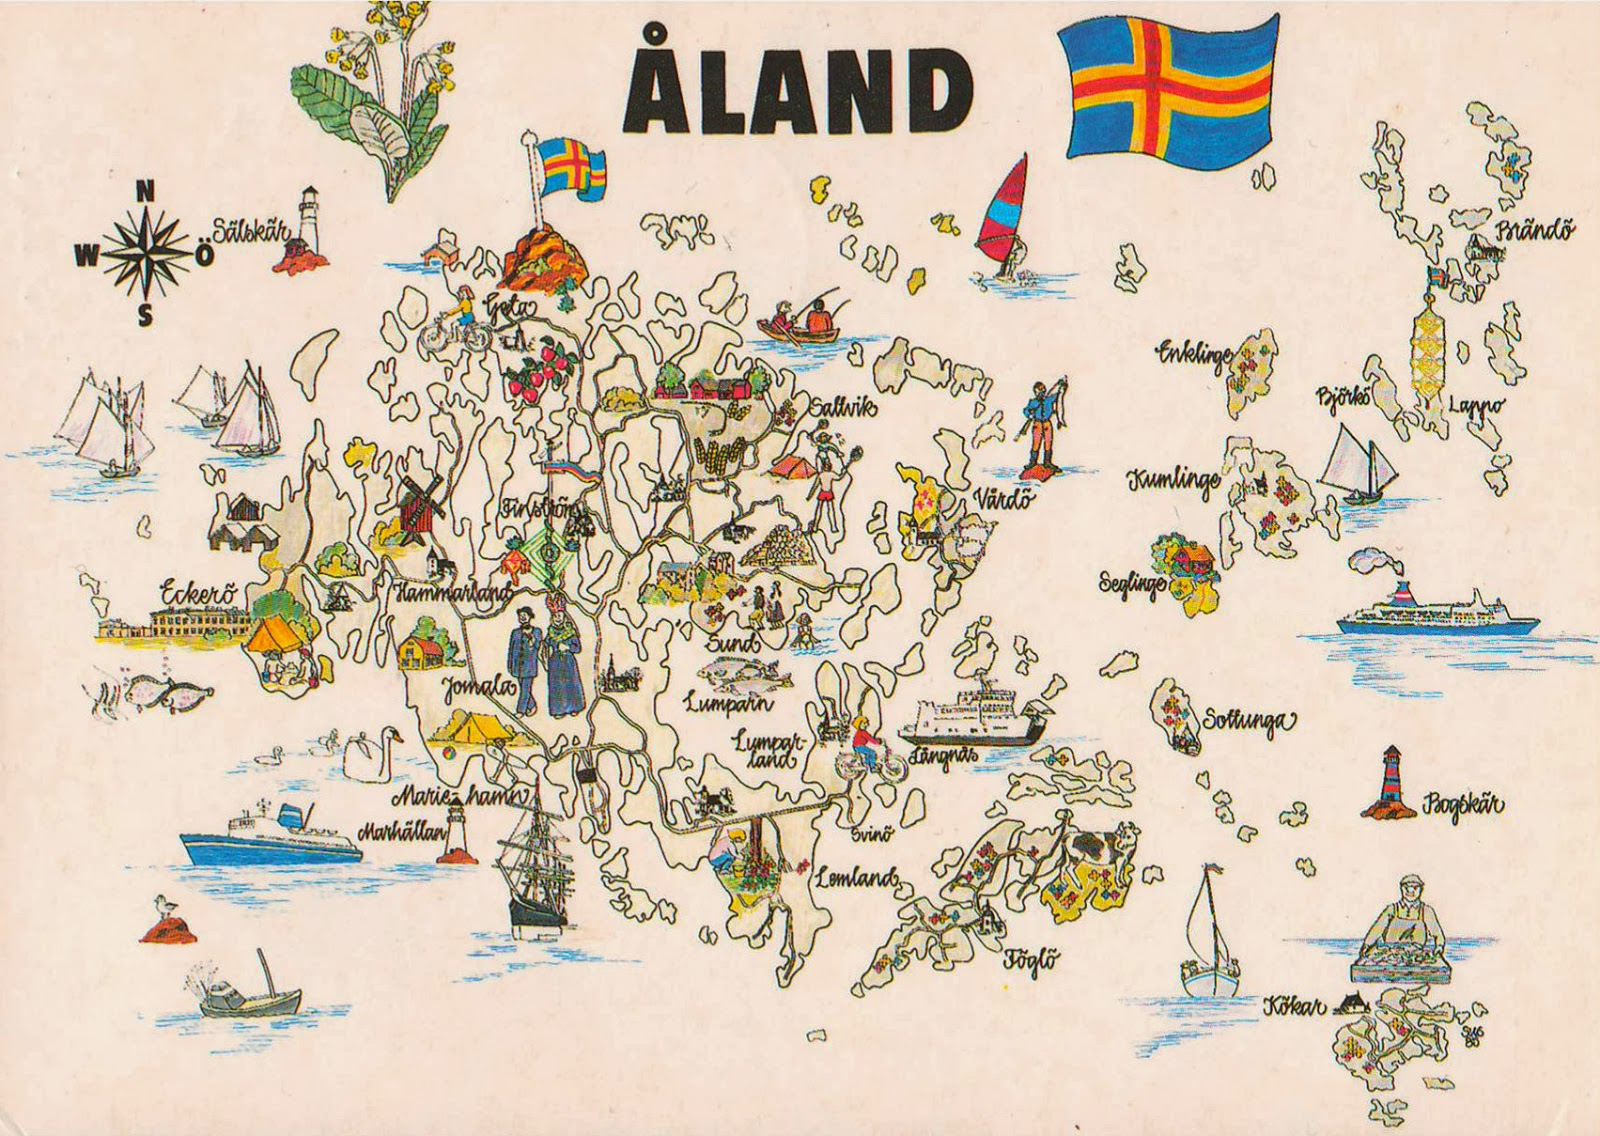 One Postcard One World Map Postcard From Åland Islands - Aland islands political map